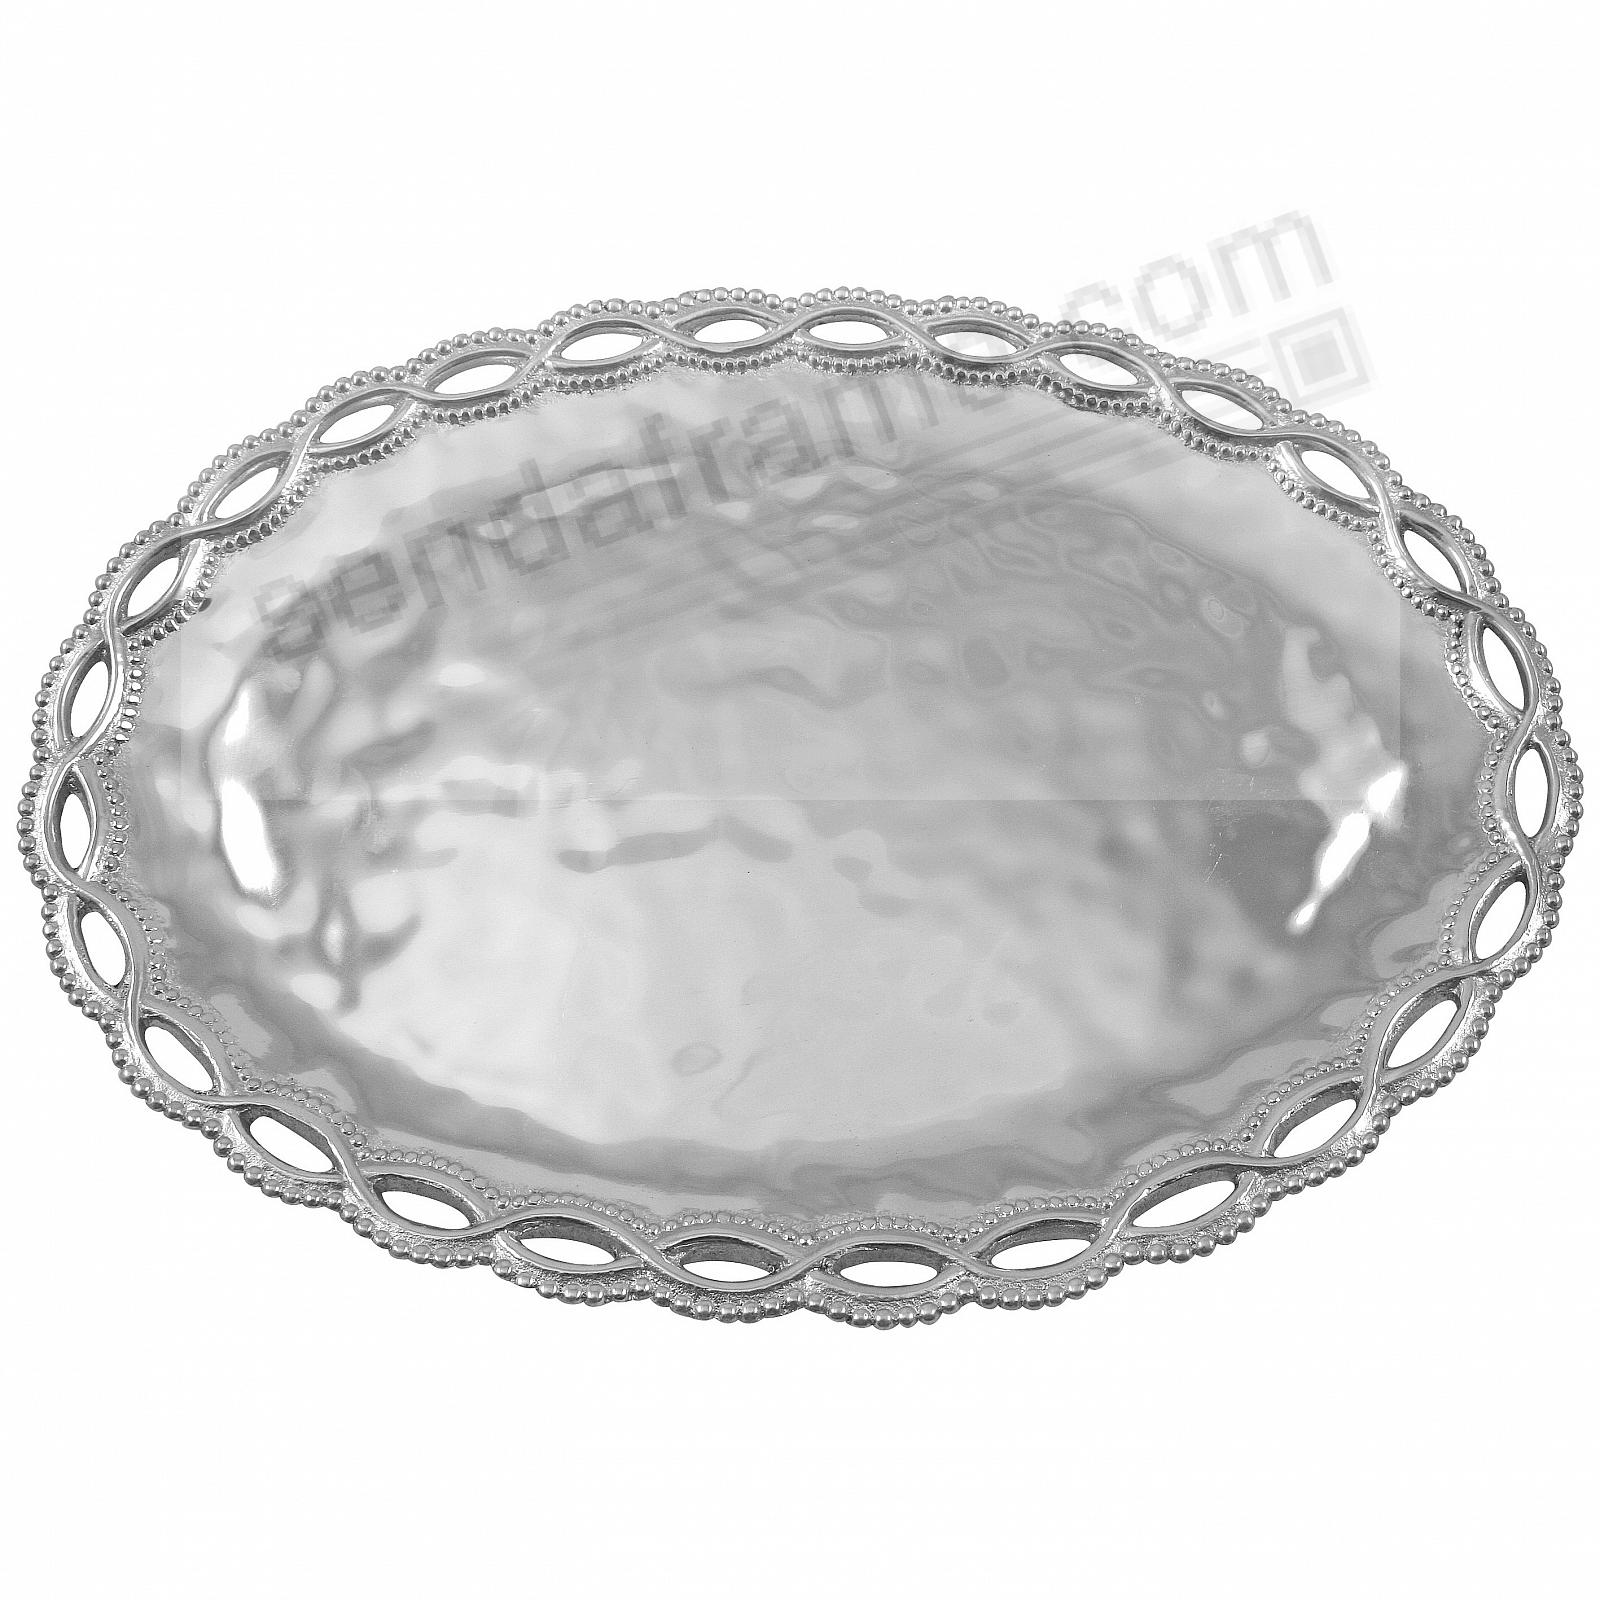 FILIGREE OVAL 14-in SERVER TRAY by Mariposa®